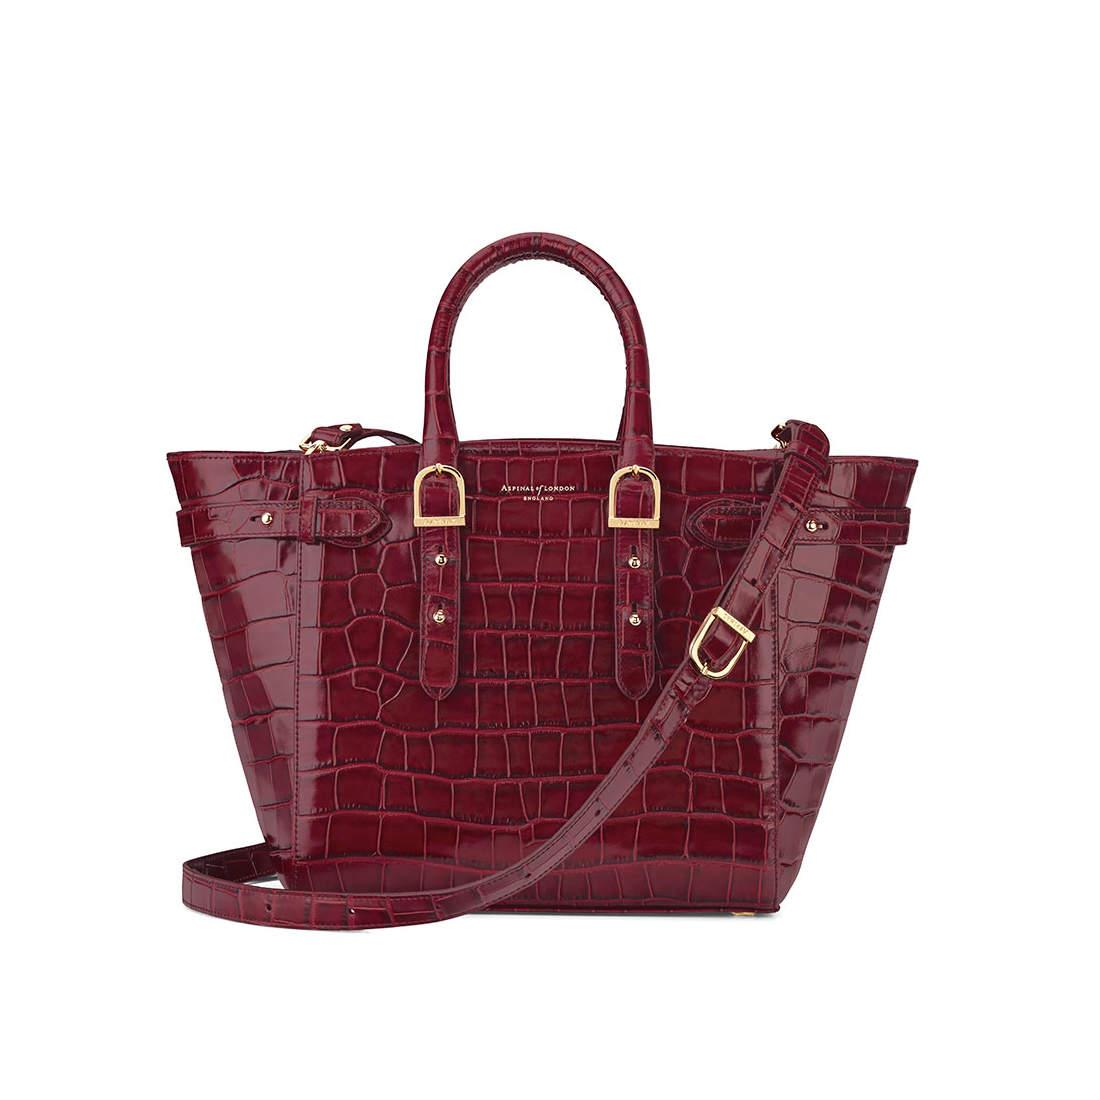 Aspinal of London Leather Marylebone Medium Tote in Bordeaux Croc (Red)